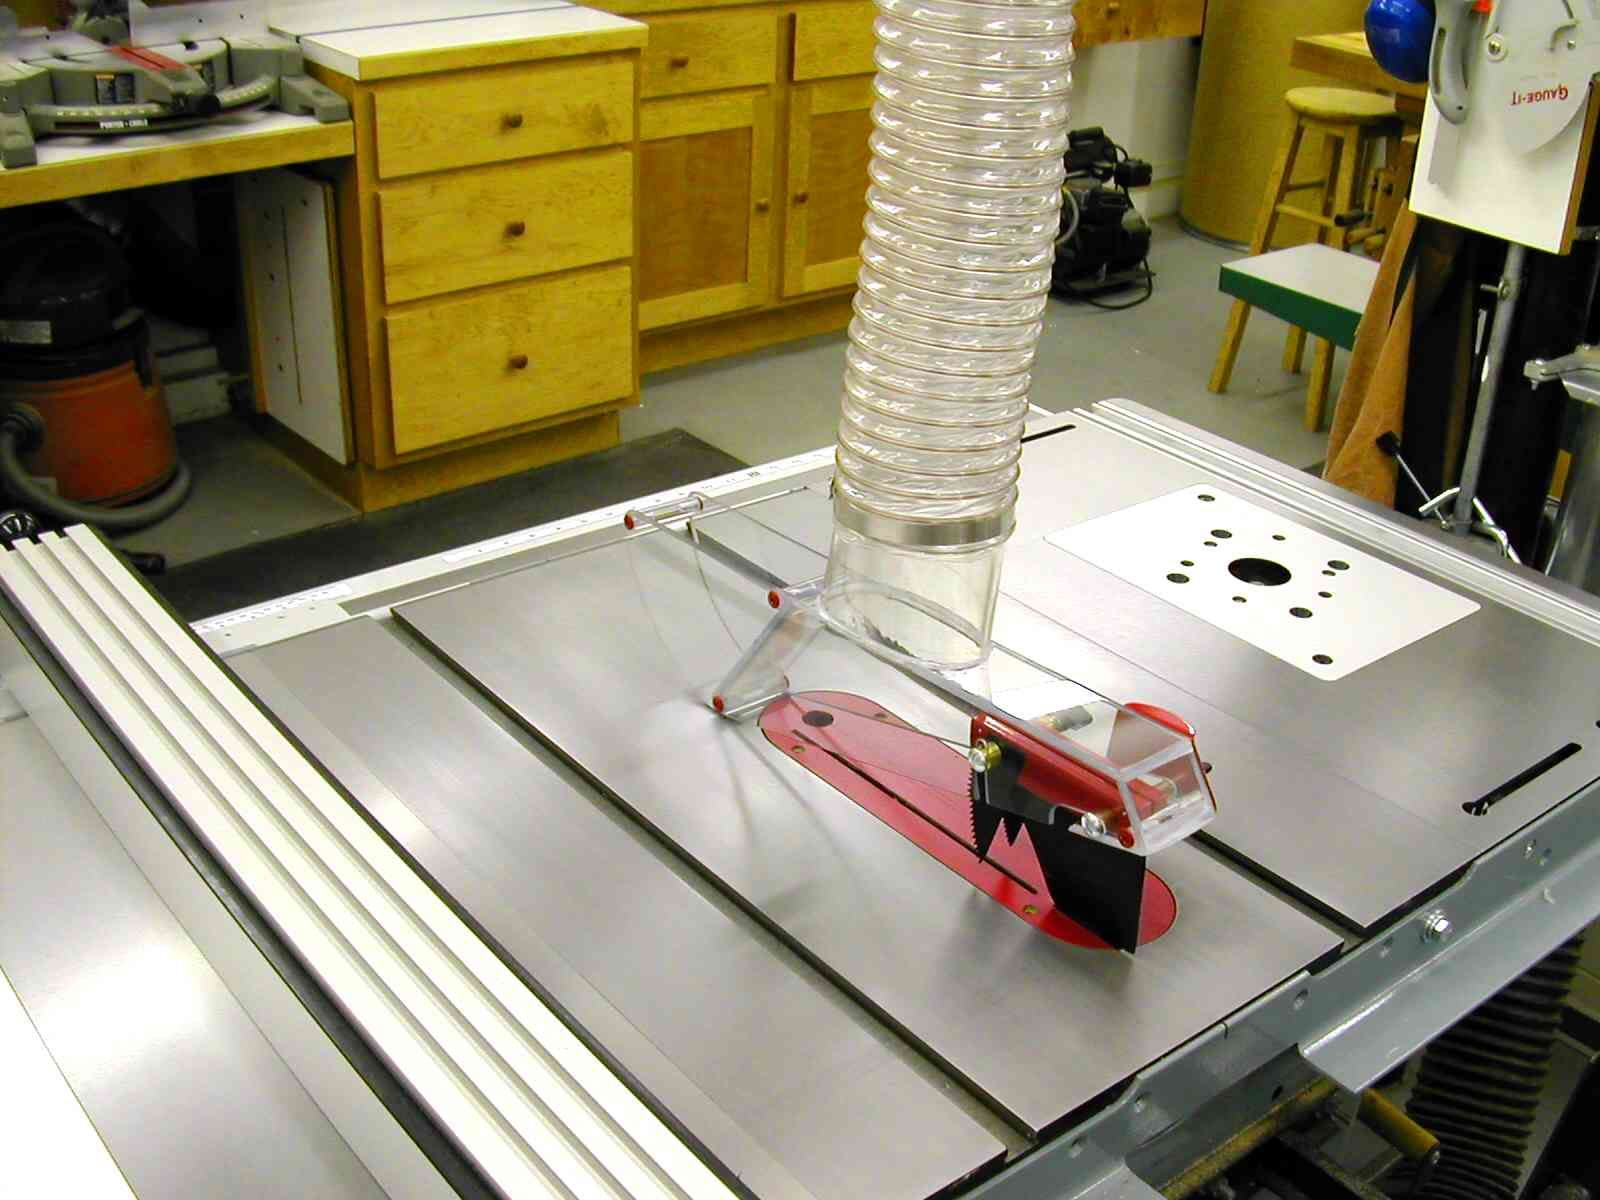 Pin By Joe D On Dust Collection For Shop Table Saw Blades